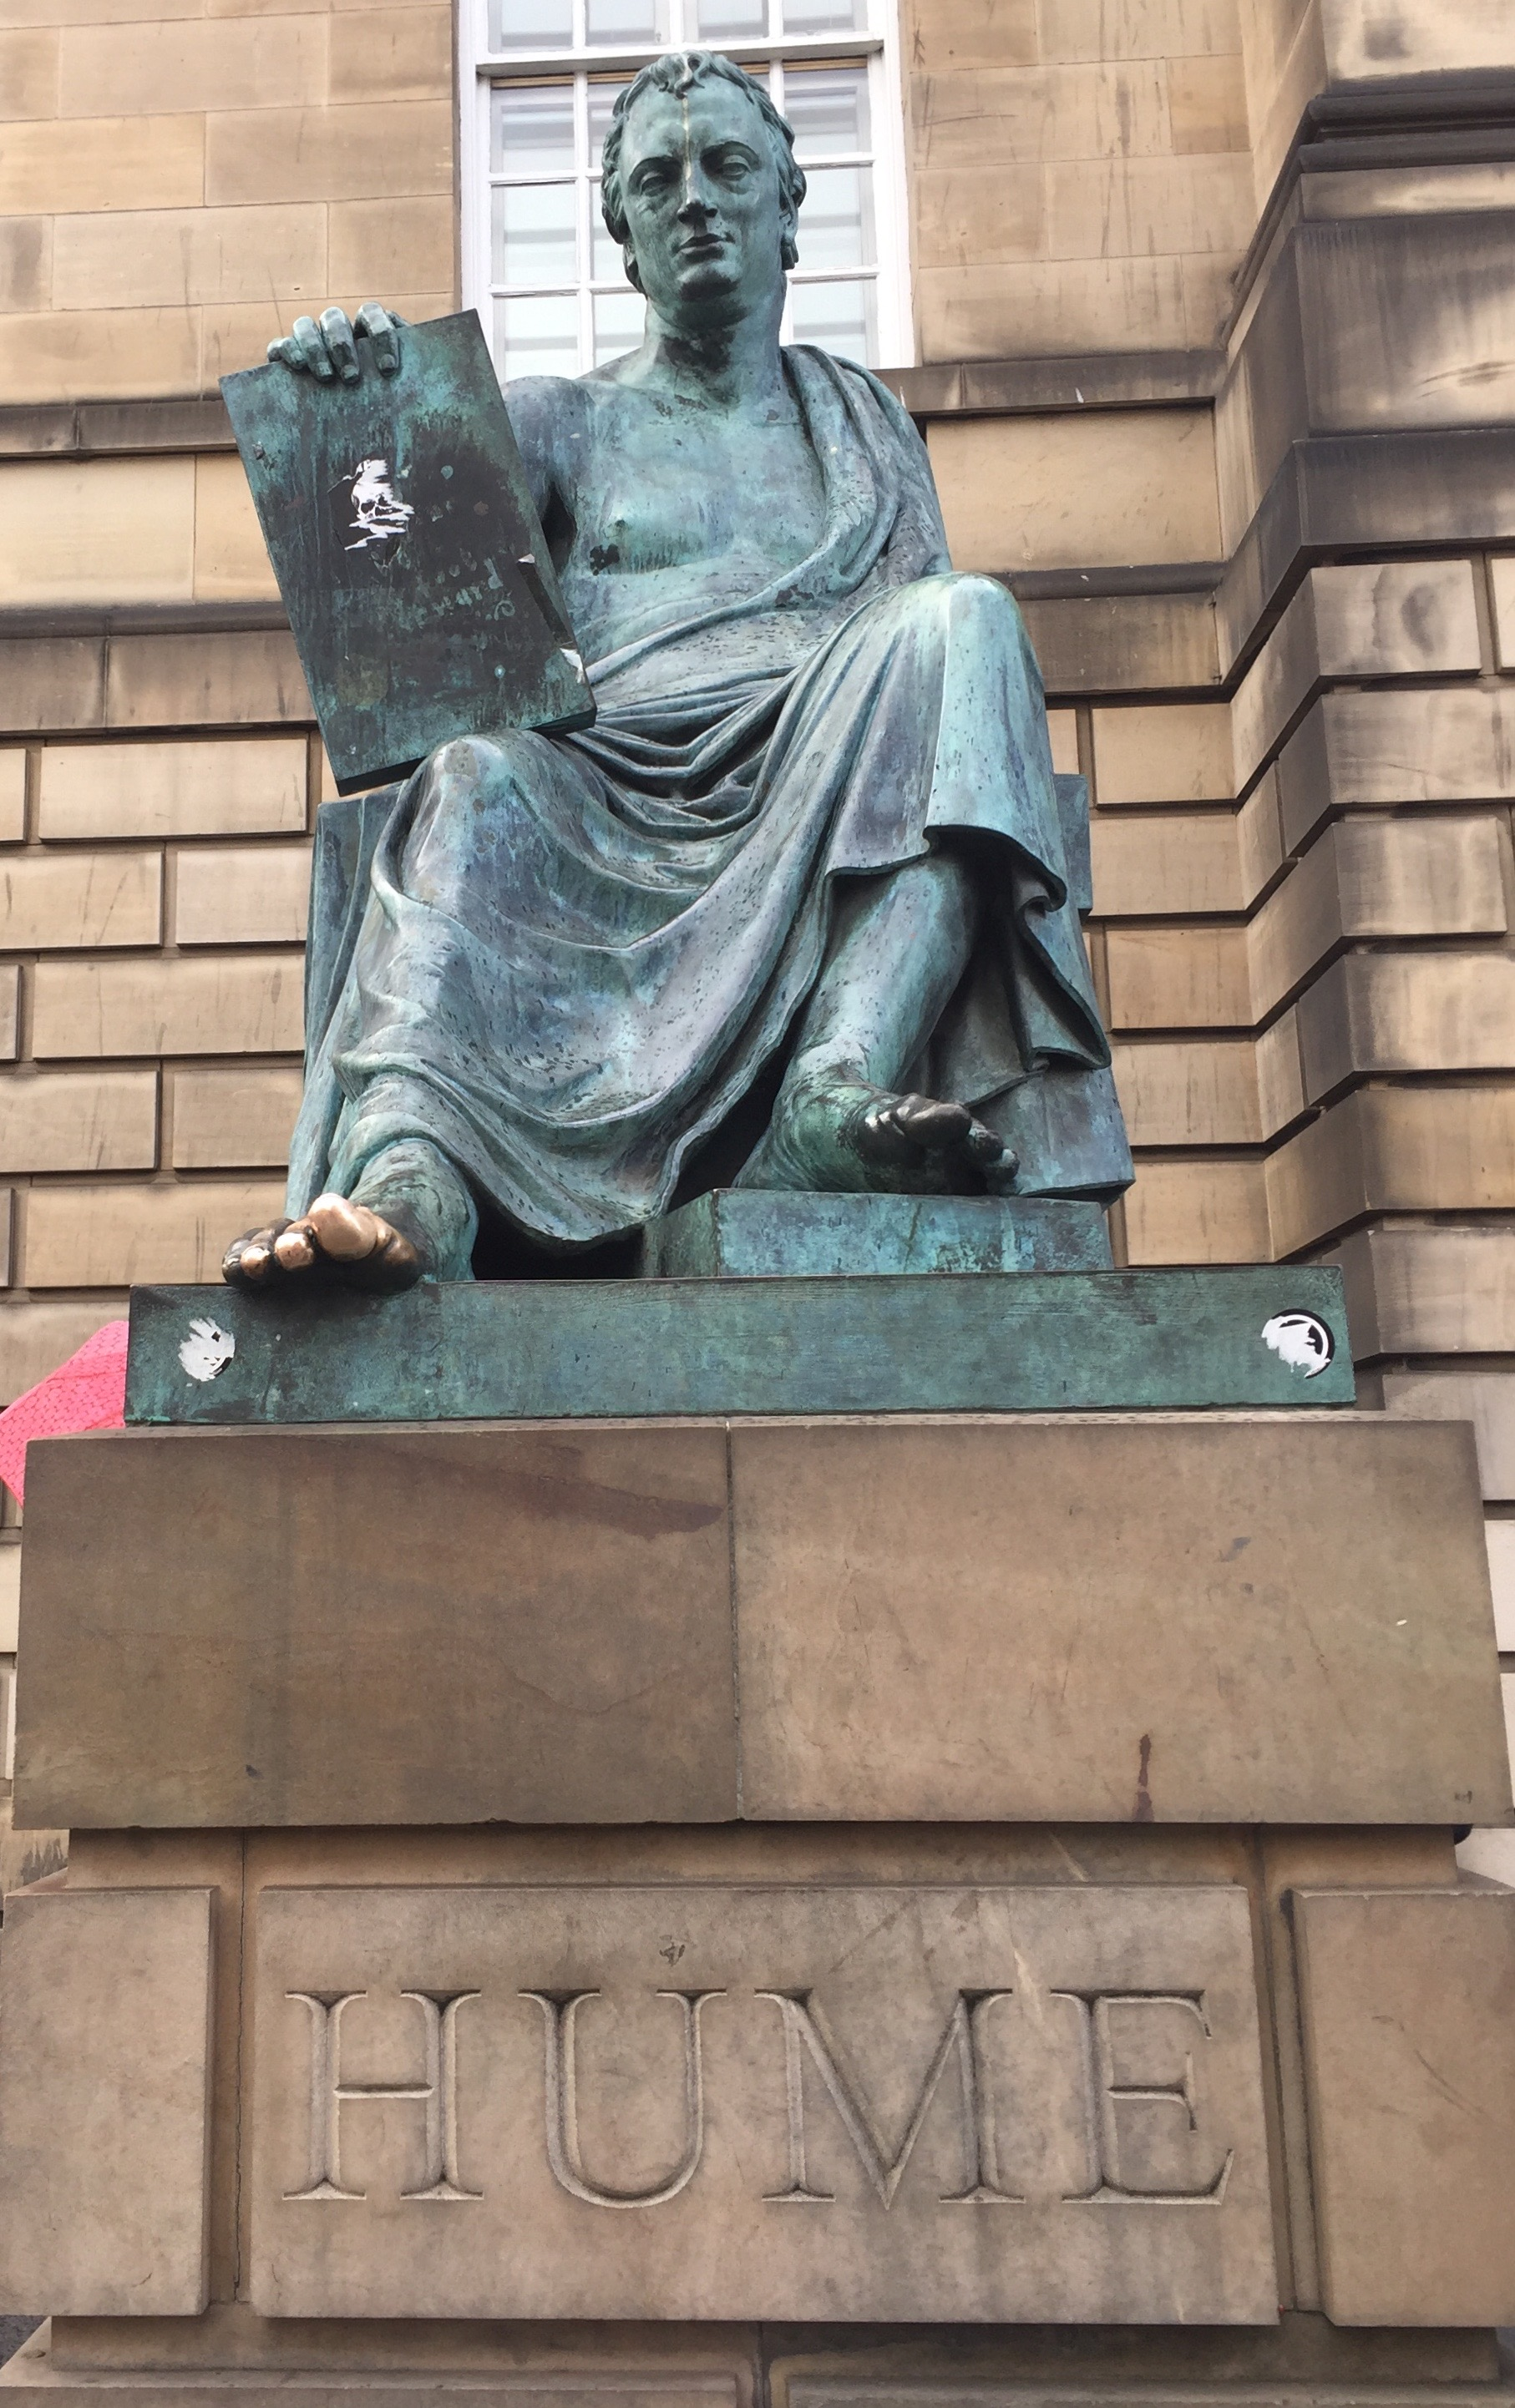 Statue of David Hume on the Royal Mile in Edinburgh.